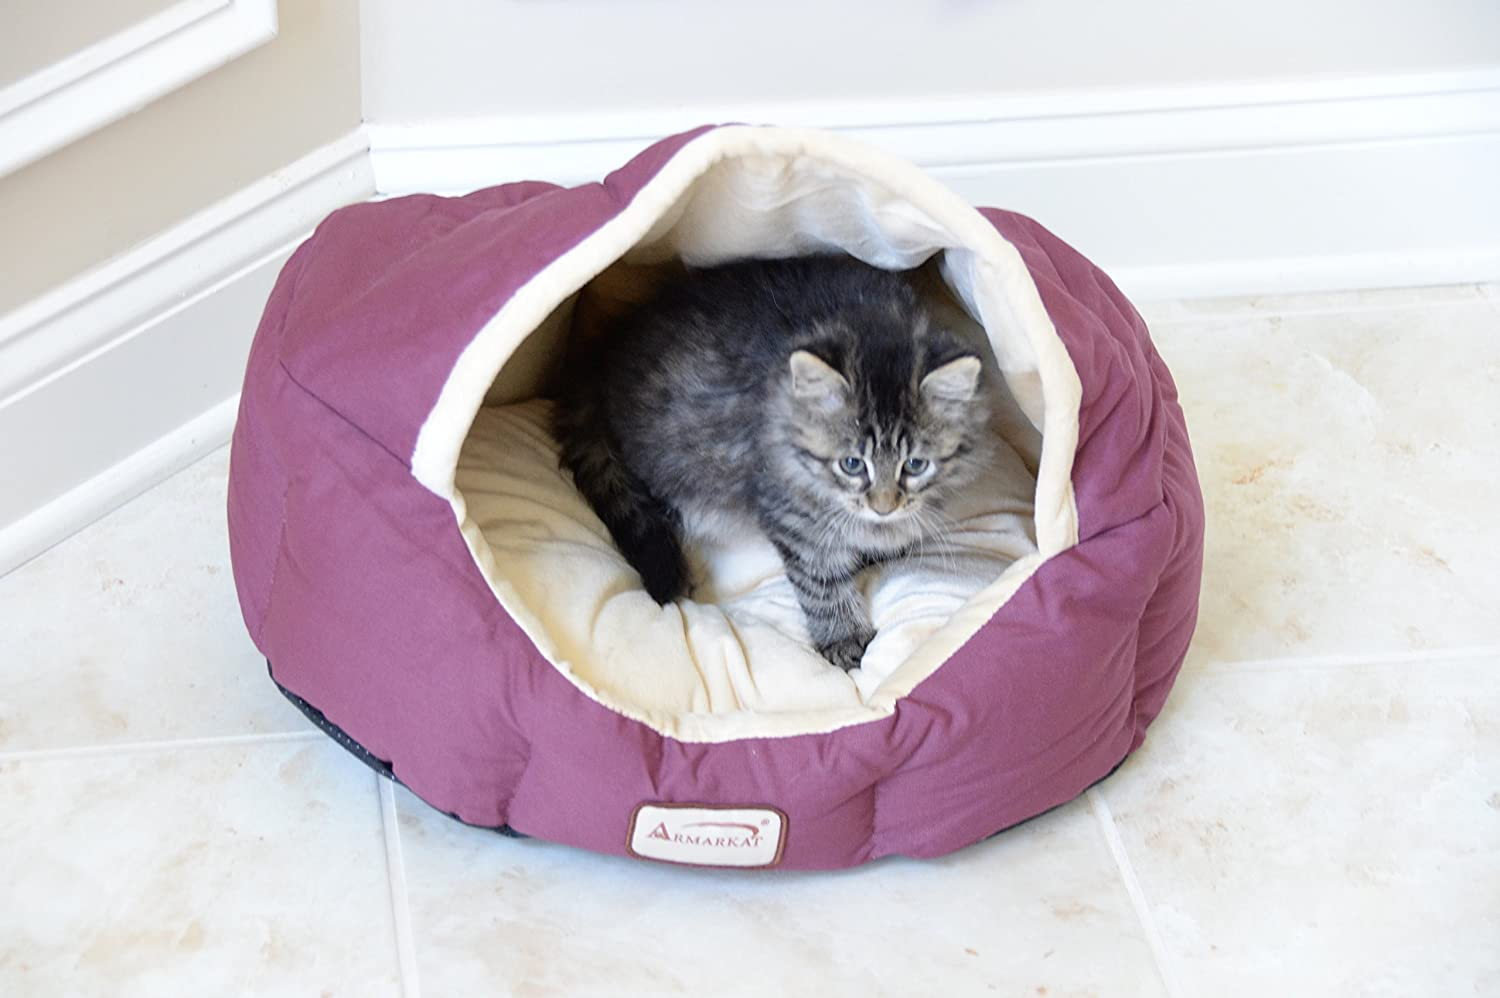 Armarkat Cat Bed C15HKF/MH Mocha and Beige AeroMark International Inc.